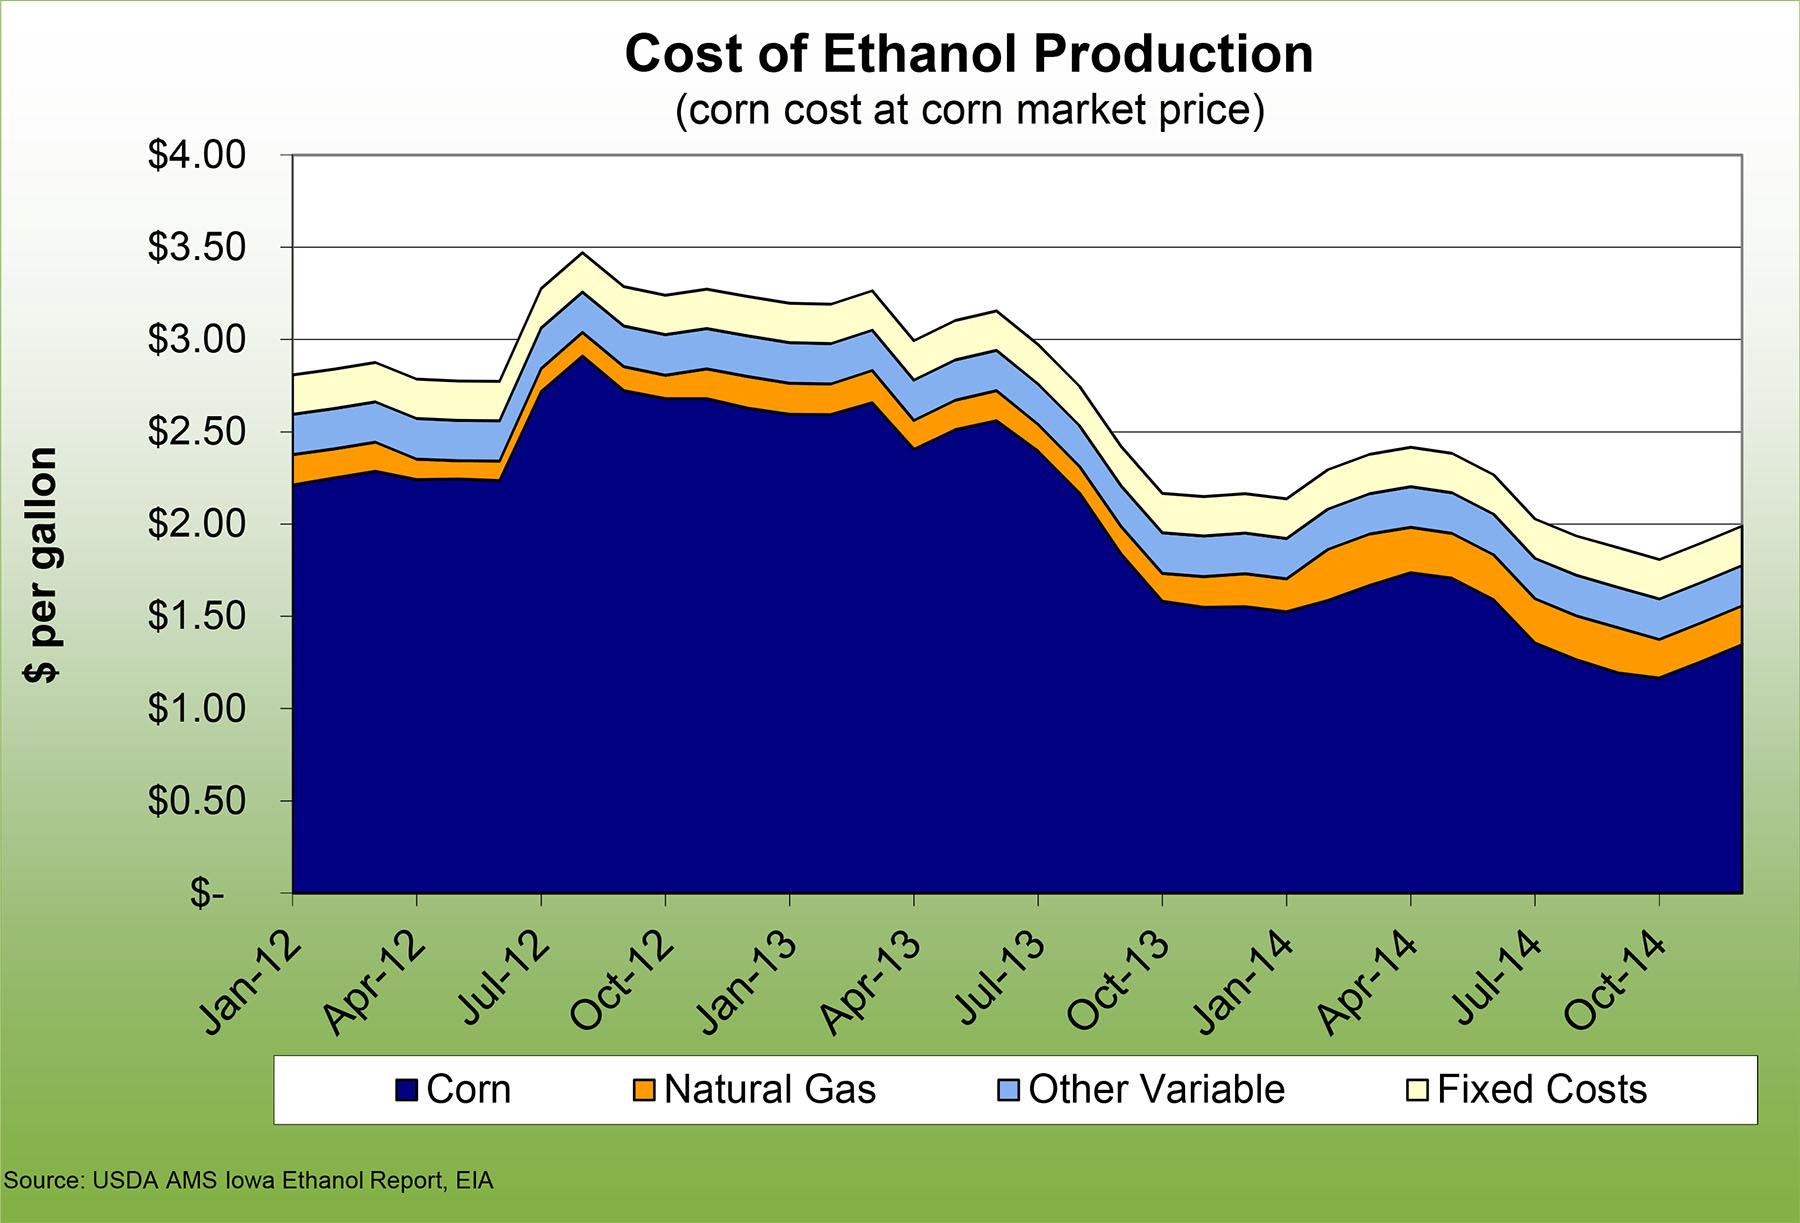 Cost of Ethanol Production